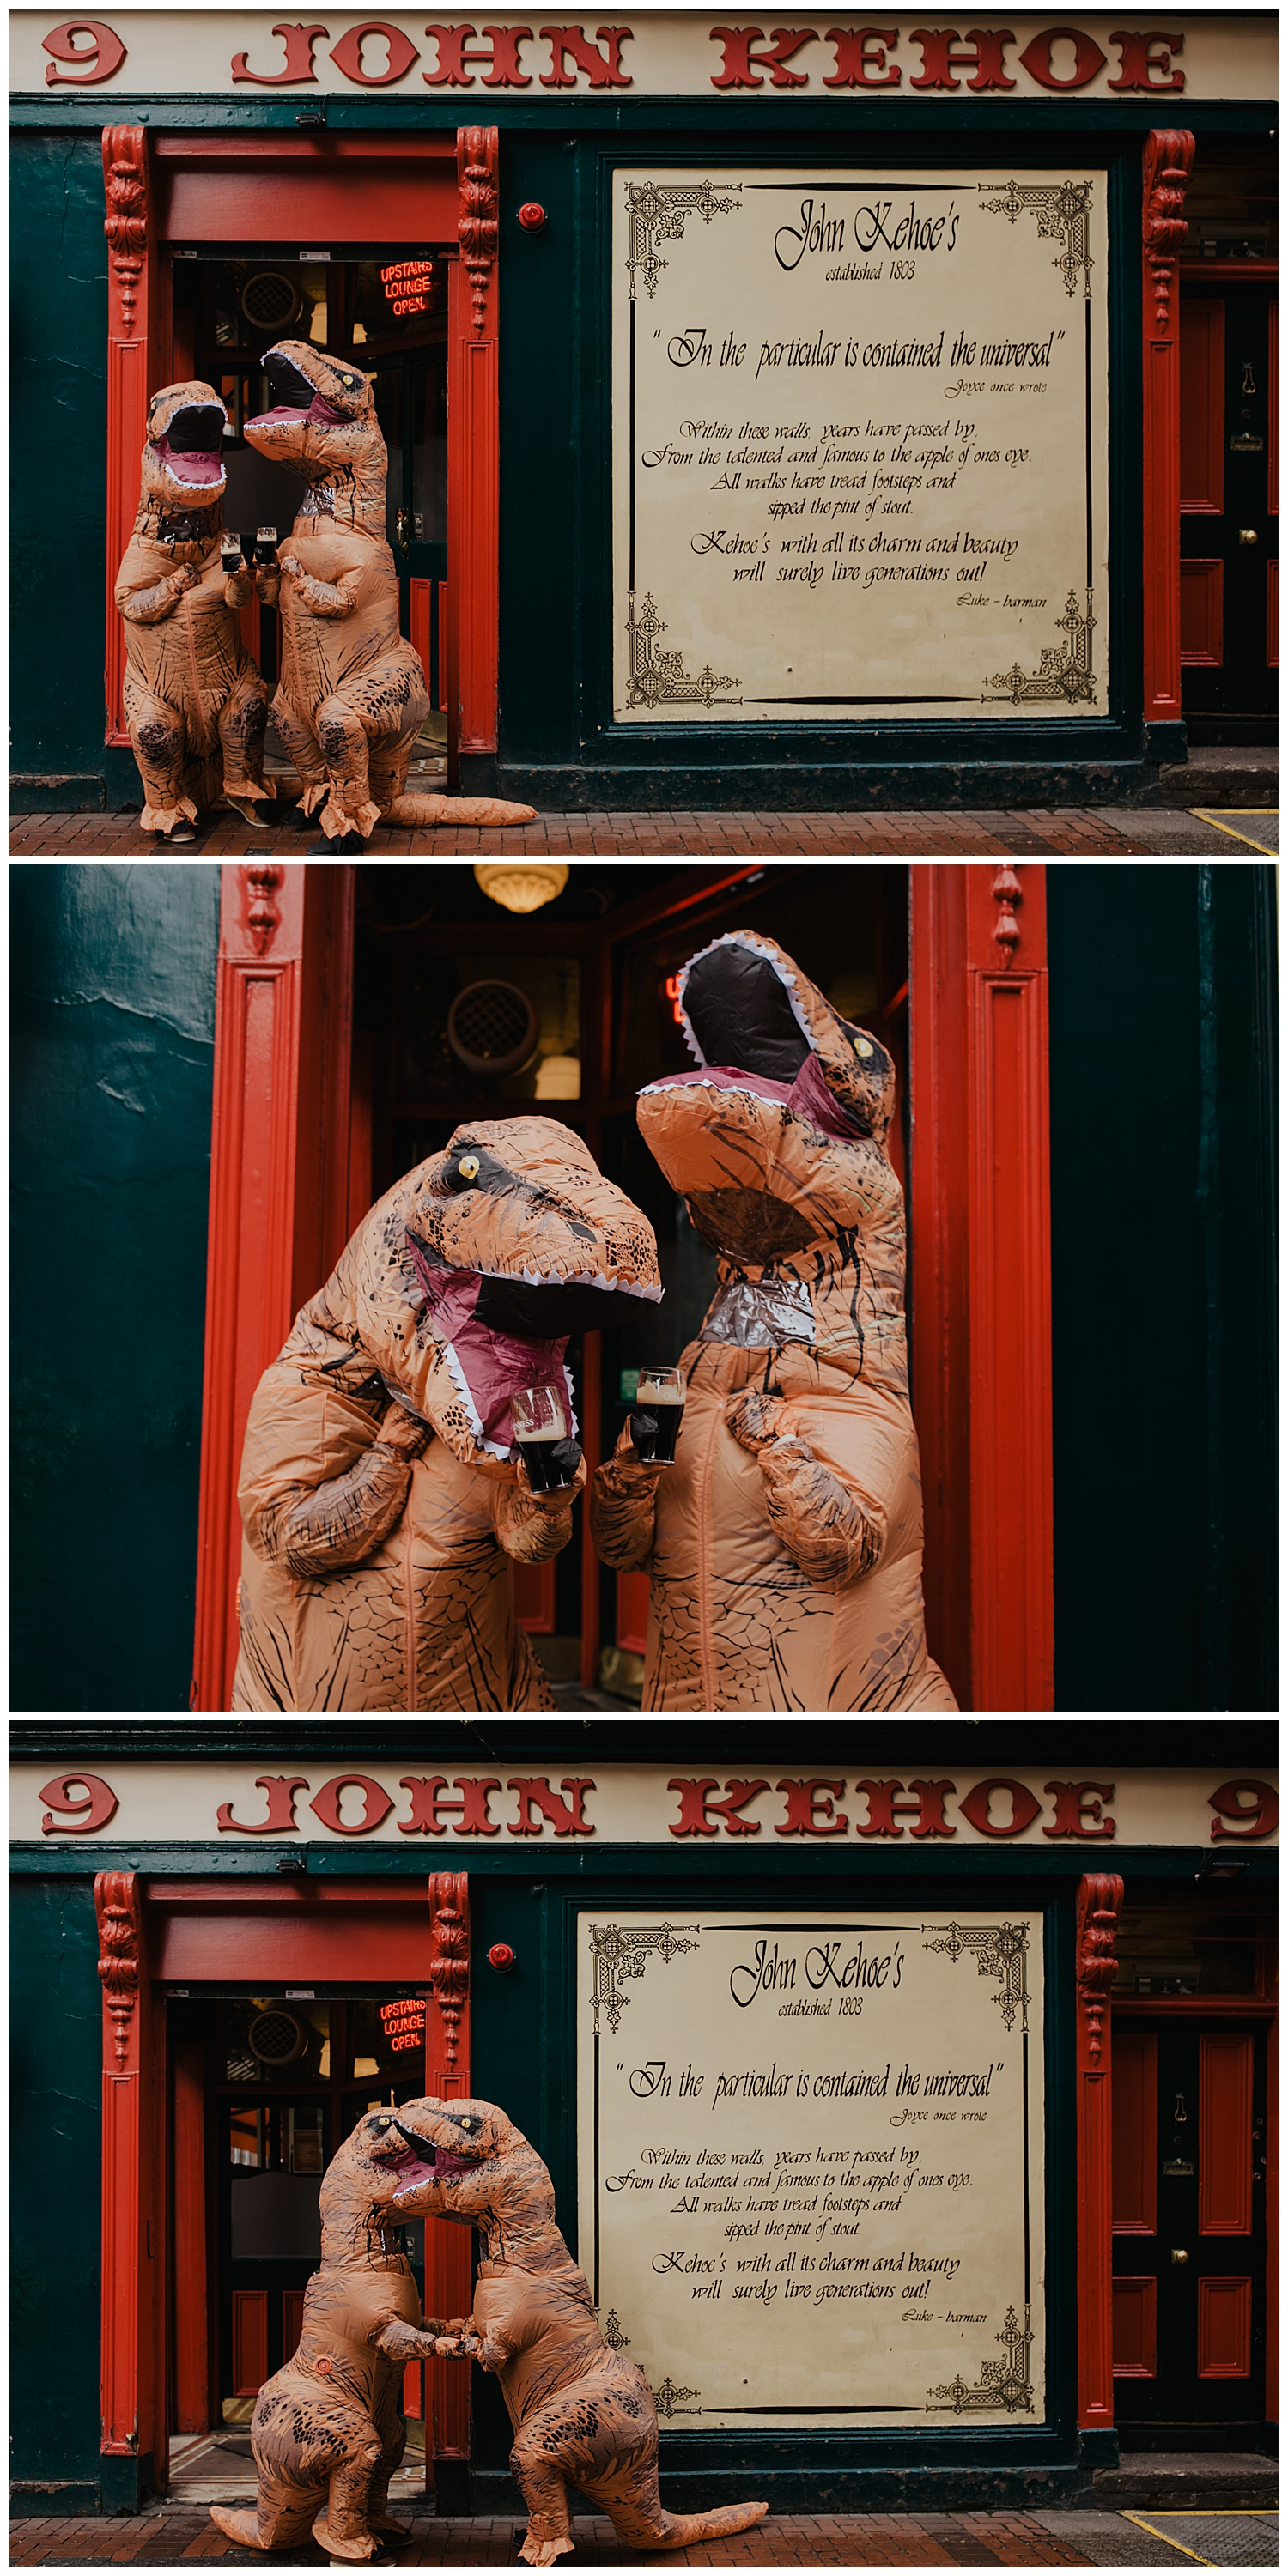 m-m-t-rex-engagement-session-wedding-photographer-dublin-ireland-livia-figueiredo-50.jpg